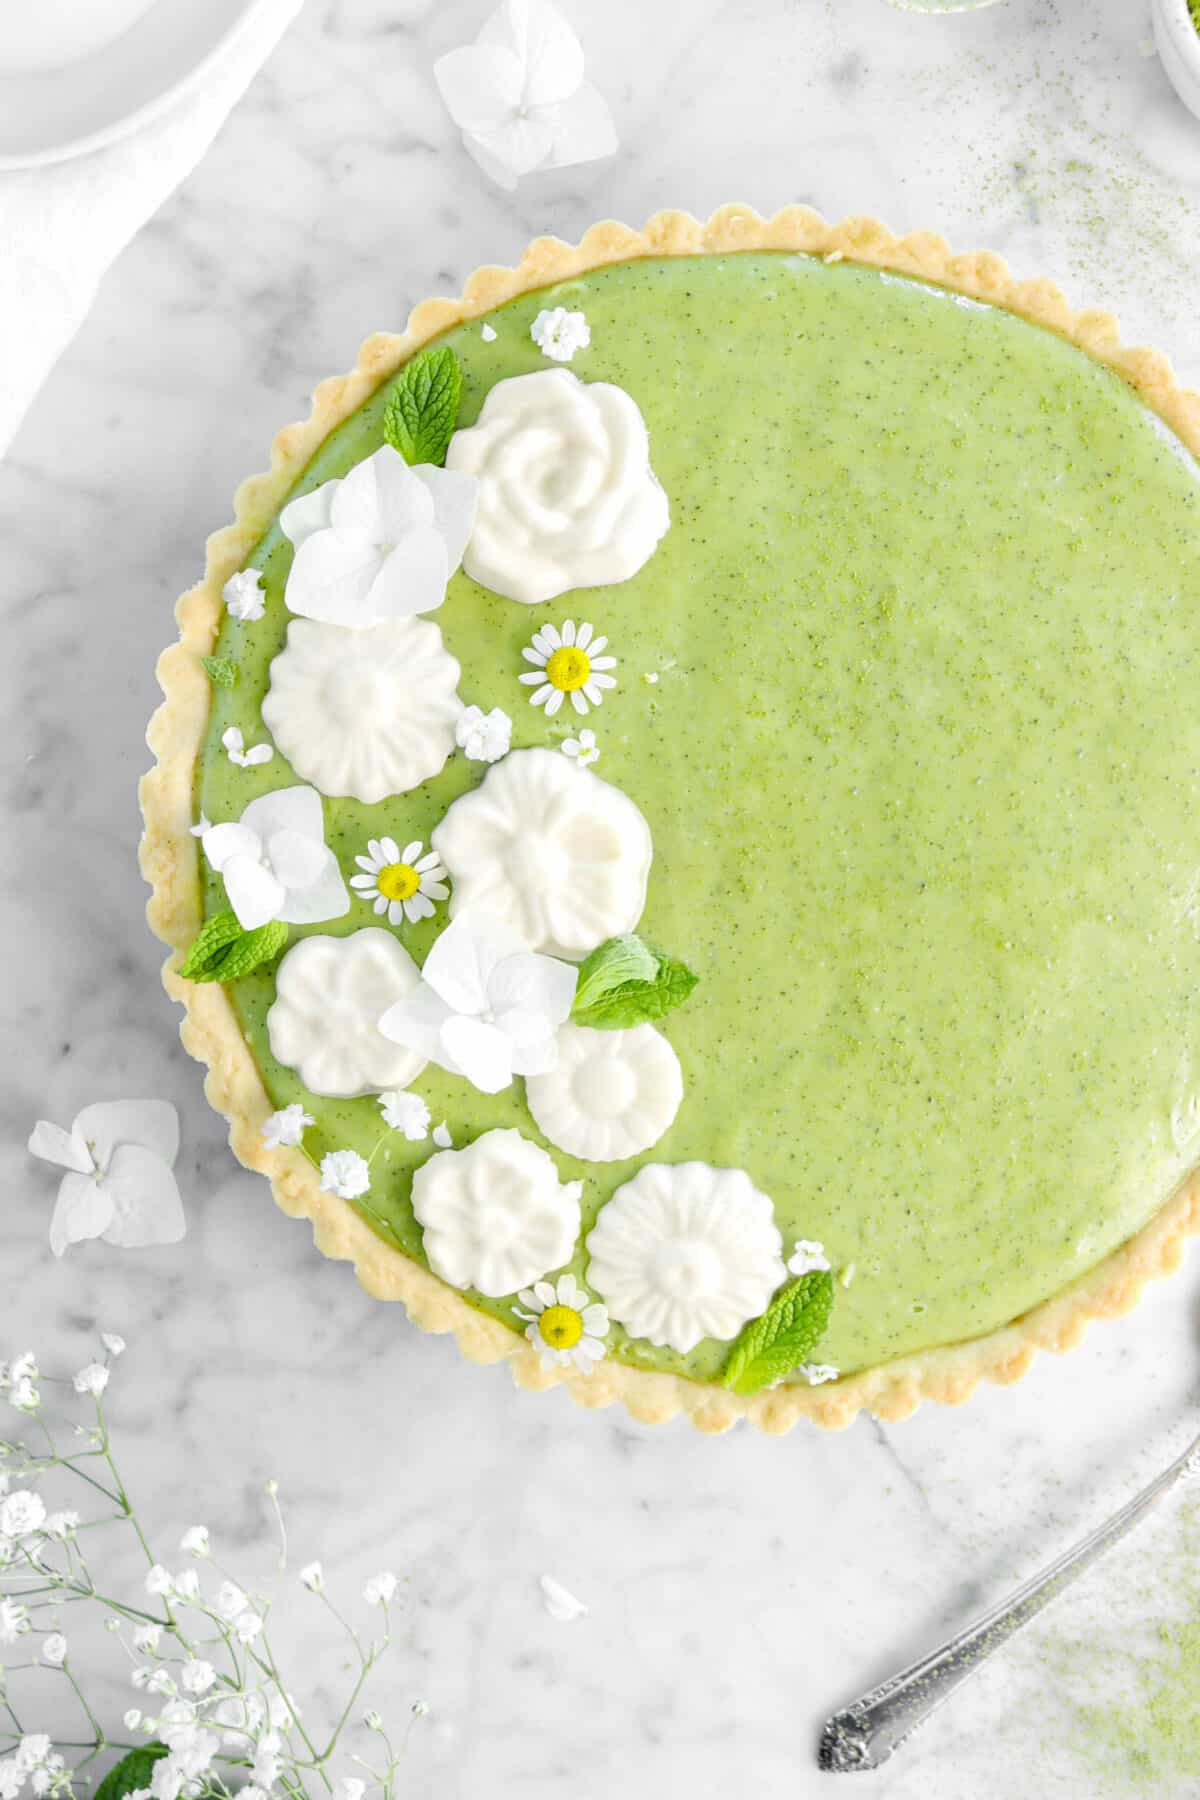 overhead shot of matcha tart on marble counter with white chocolate flowers, fresh flowers, and mint leaves